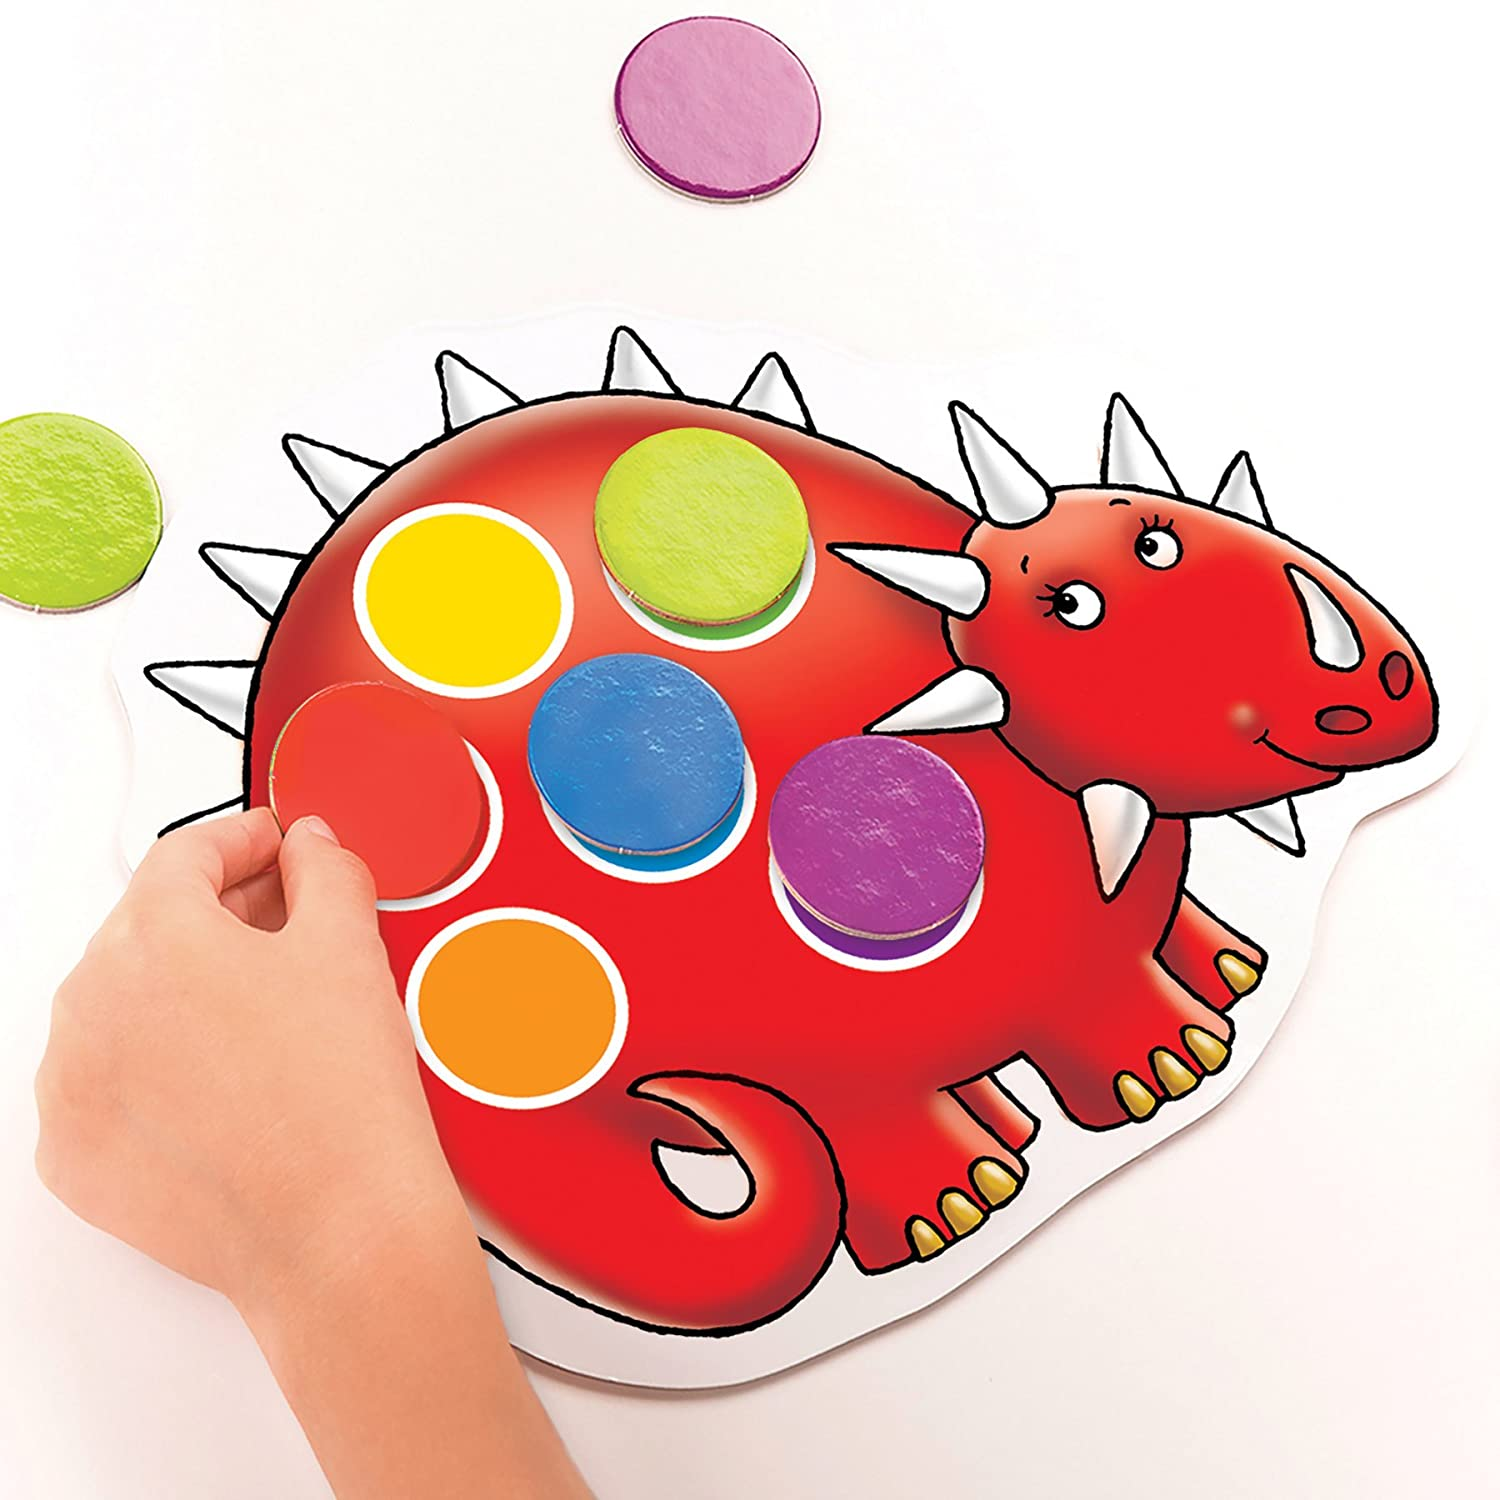 Orchard Toys Dotty Dinosaurs Childrens Game Multi One Size